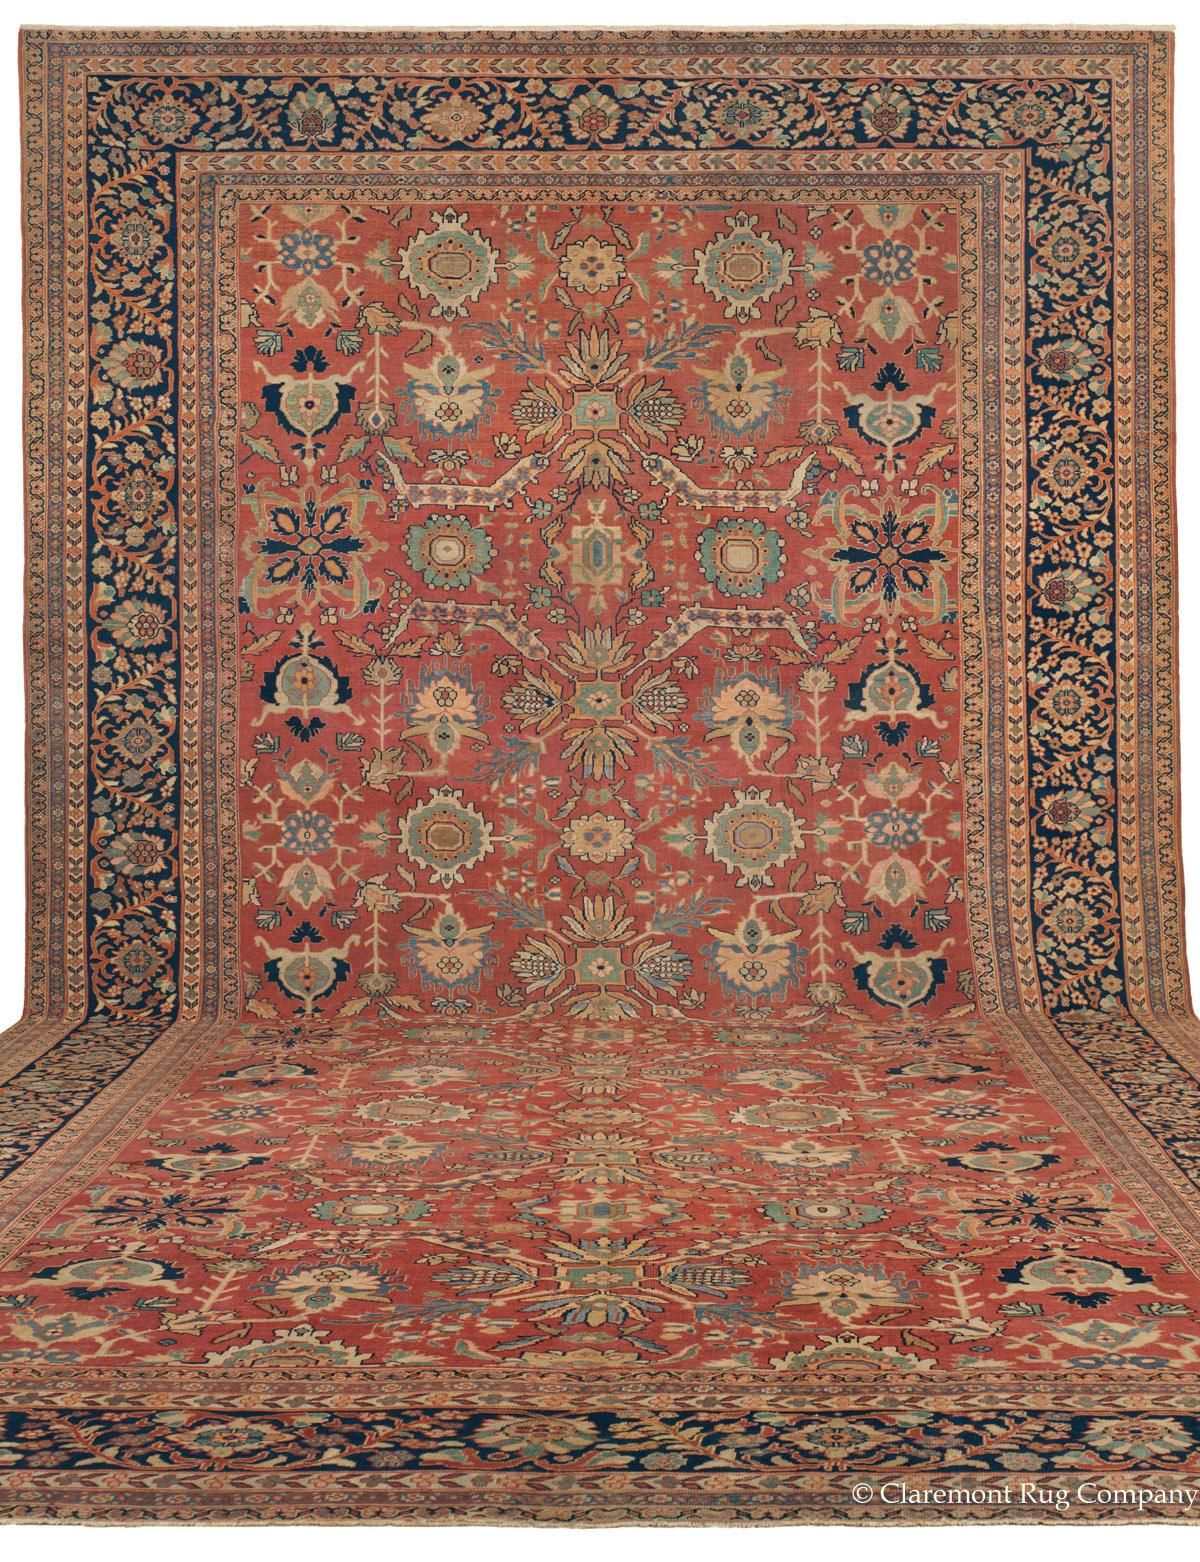 Sultanabad, 13ft 3in x 24ft 3in, Circa 1875. Possessing all the most desired attributes of the ever-beloved Sultanabad weaving group, this 19th century palace-size carpet brings a stunning visual impact to its massive proportions. The soft, welcoming coloration of this luxurious carpet, the result of nuanced, expertly chosen natural dyes and the inimitable patina of substantial age, imparts luminosity to every inch of its expansive allover design, enveloping the viewer in harmonious hues.